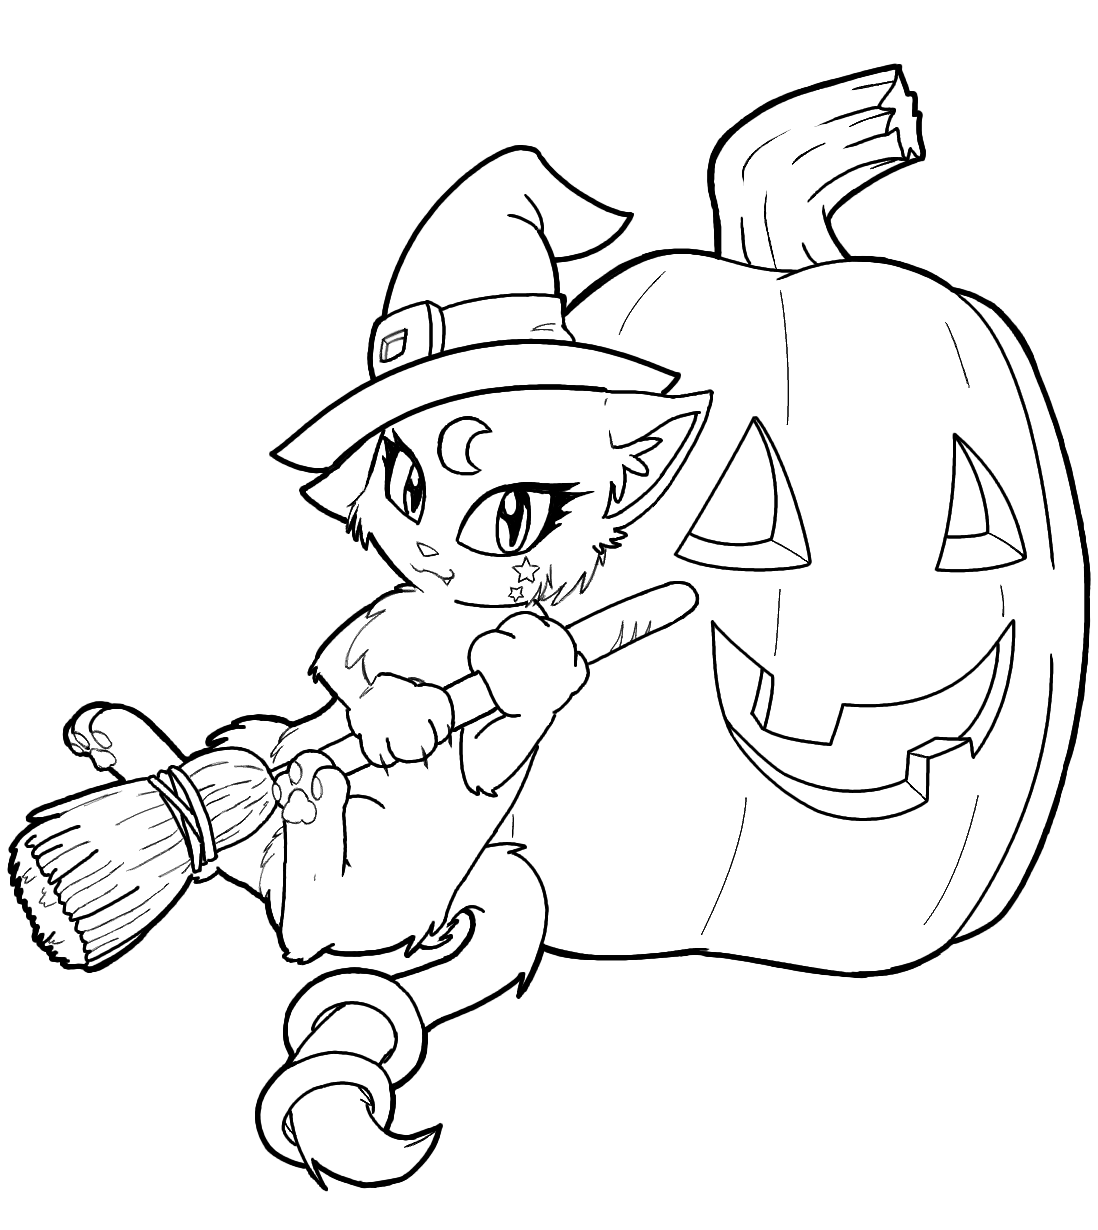 Witchcraft clipart halloween coloring Pages Puppet Pages Marcella Coloring